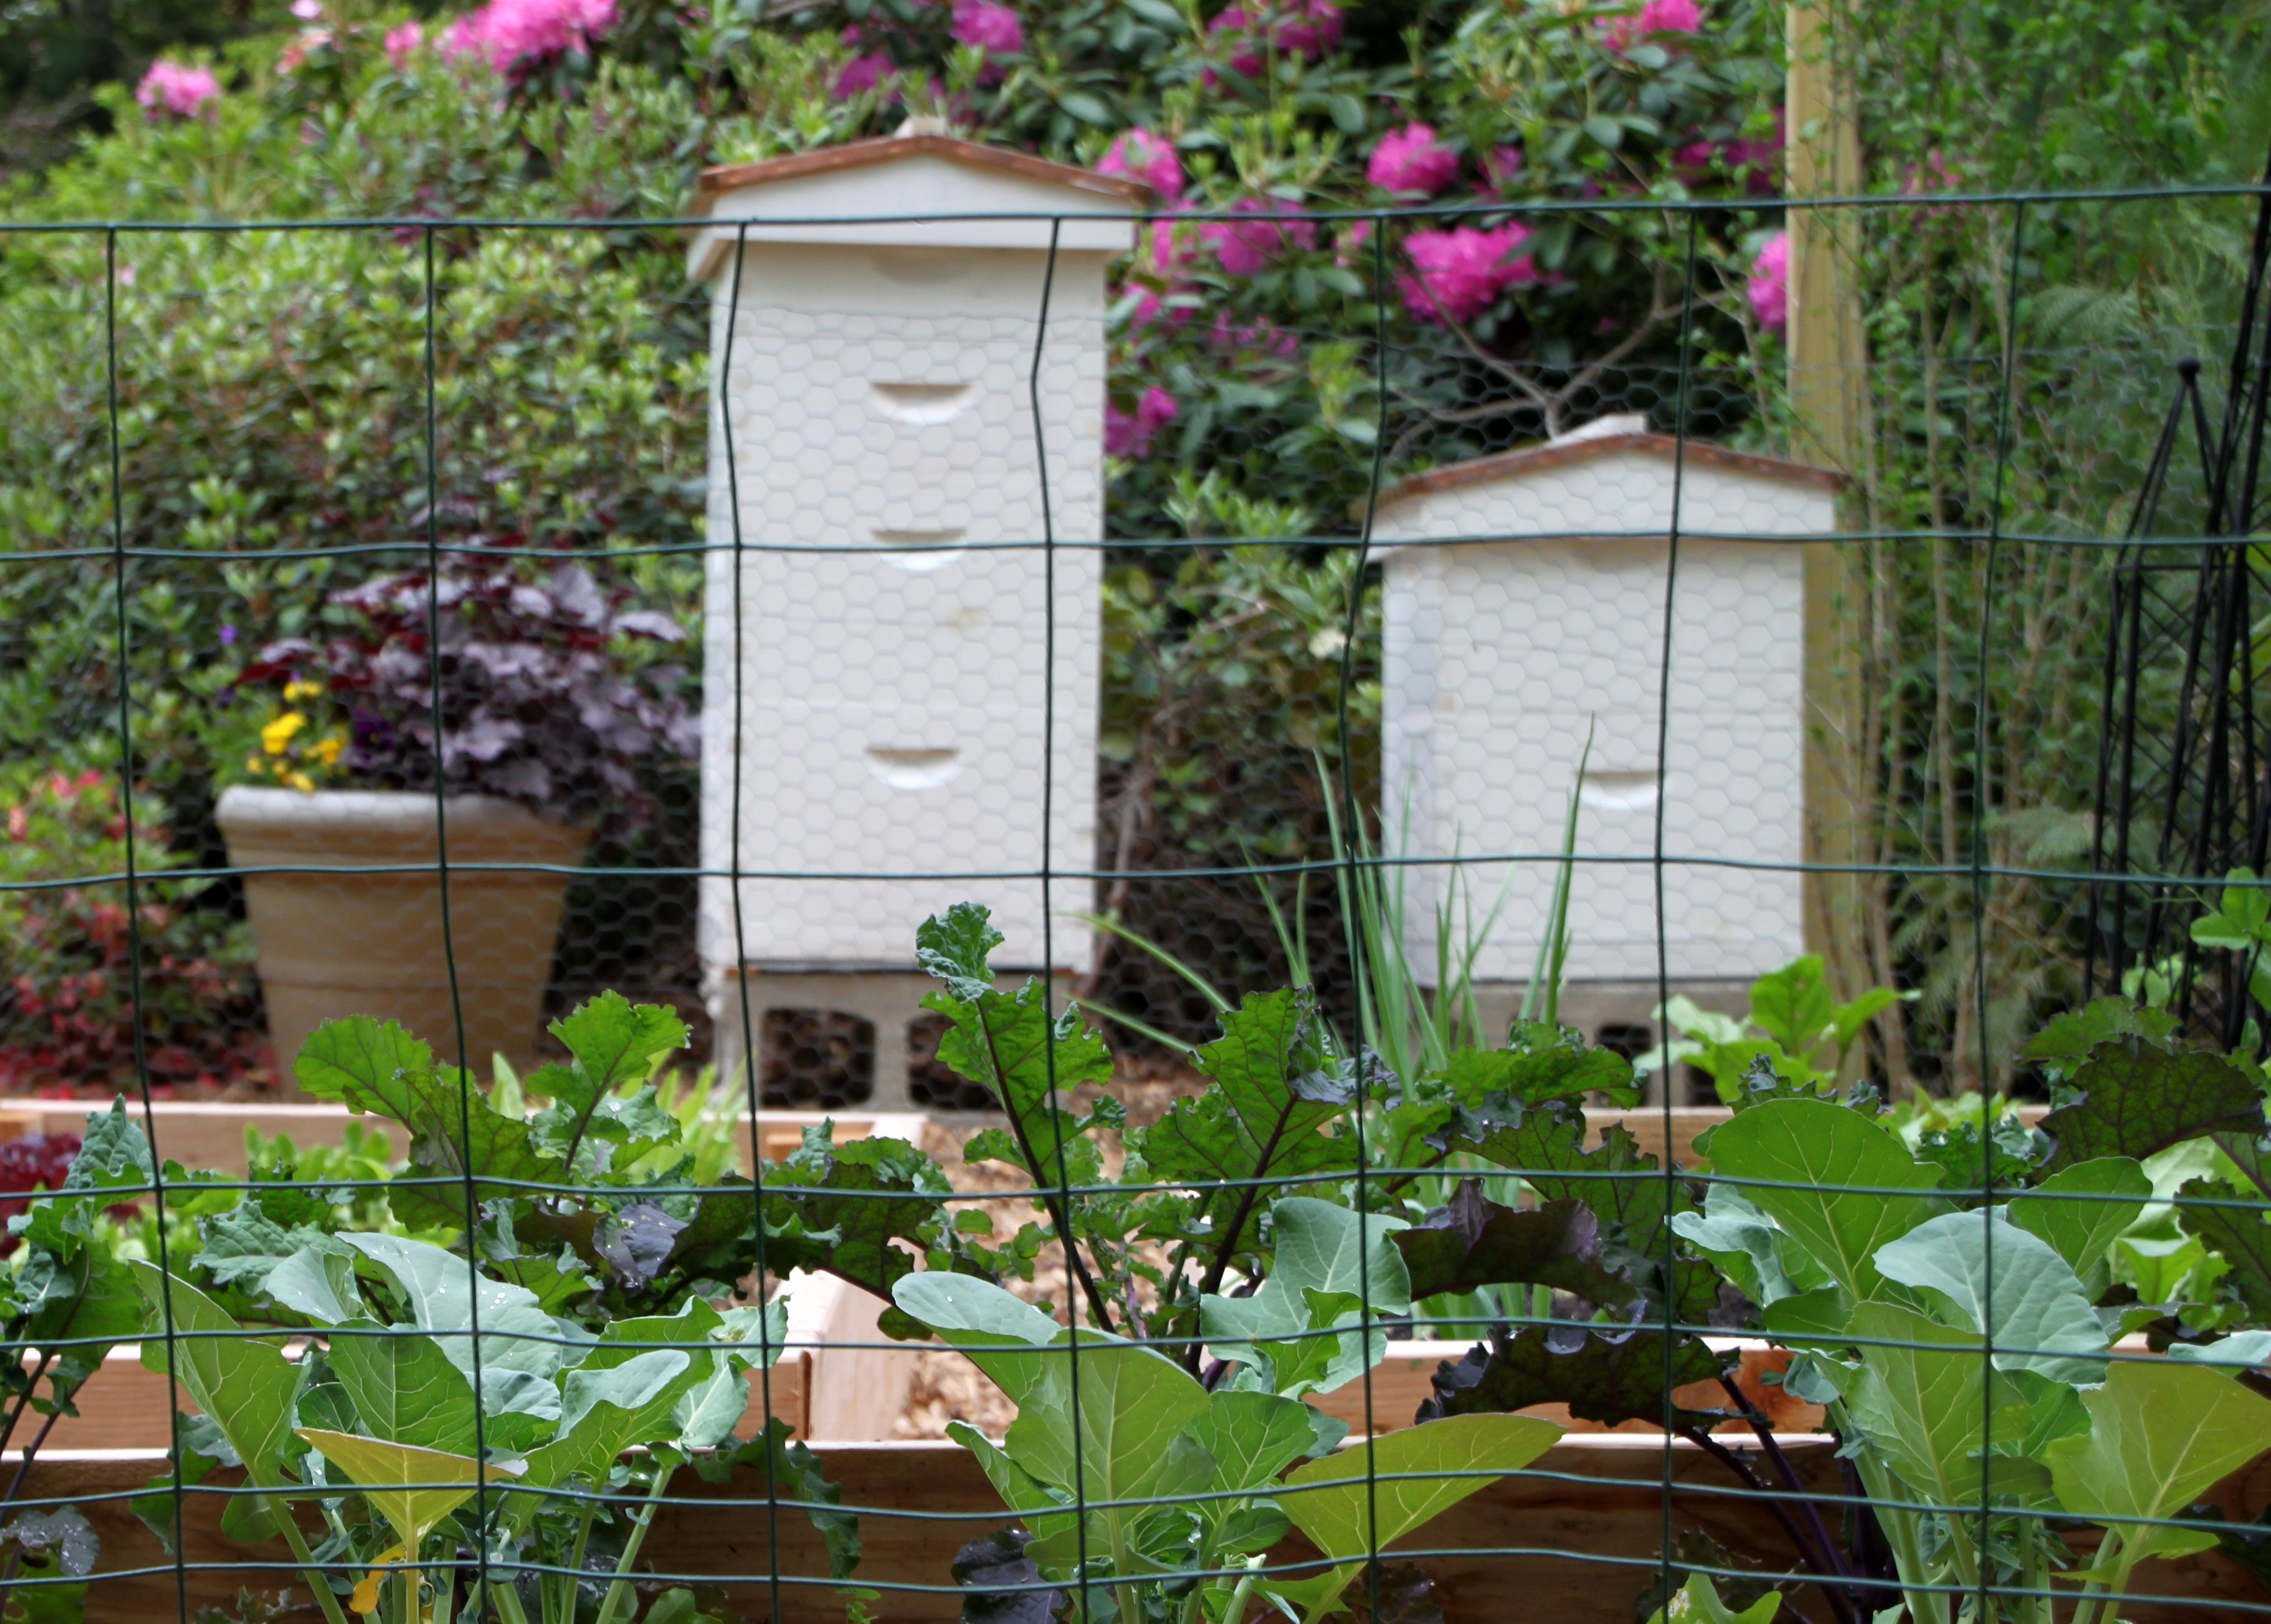 As beekeepers, there come times when we need to feed our bees or offer them up reserves to help them get through dearths and winter. New colonies should be fed so that they can quickly build out new comb for the queen to lay and for them to store their foraged pollen and nectar.  Existing …